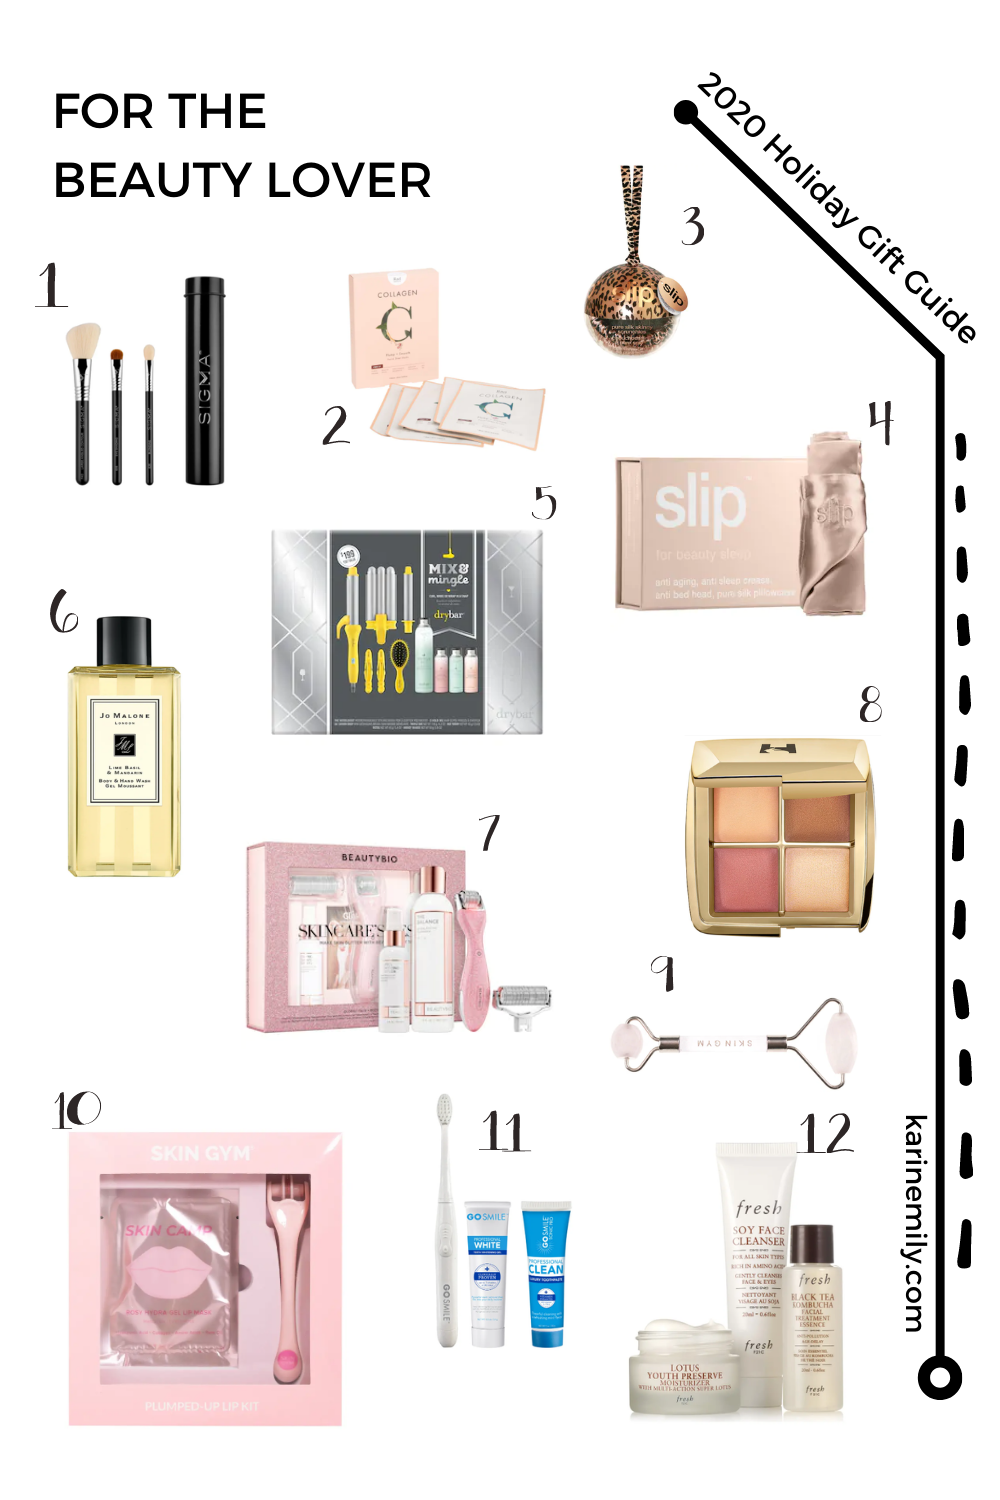 2020 Holiday Gift Guide for the Beauty Lover